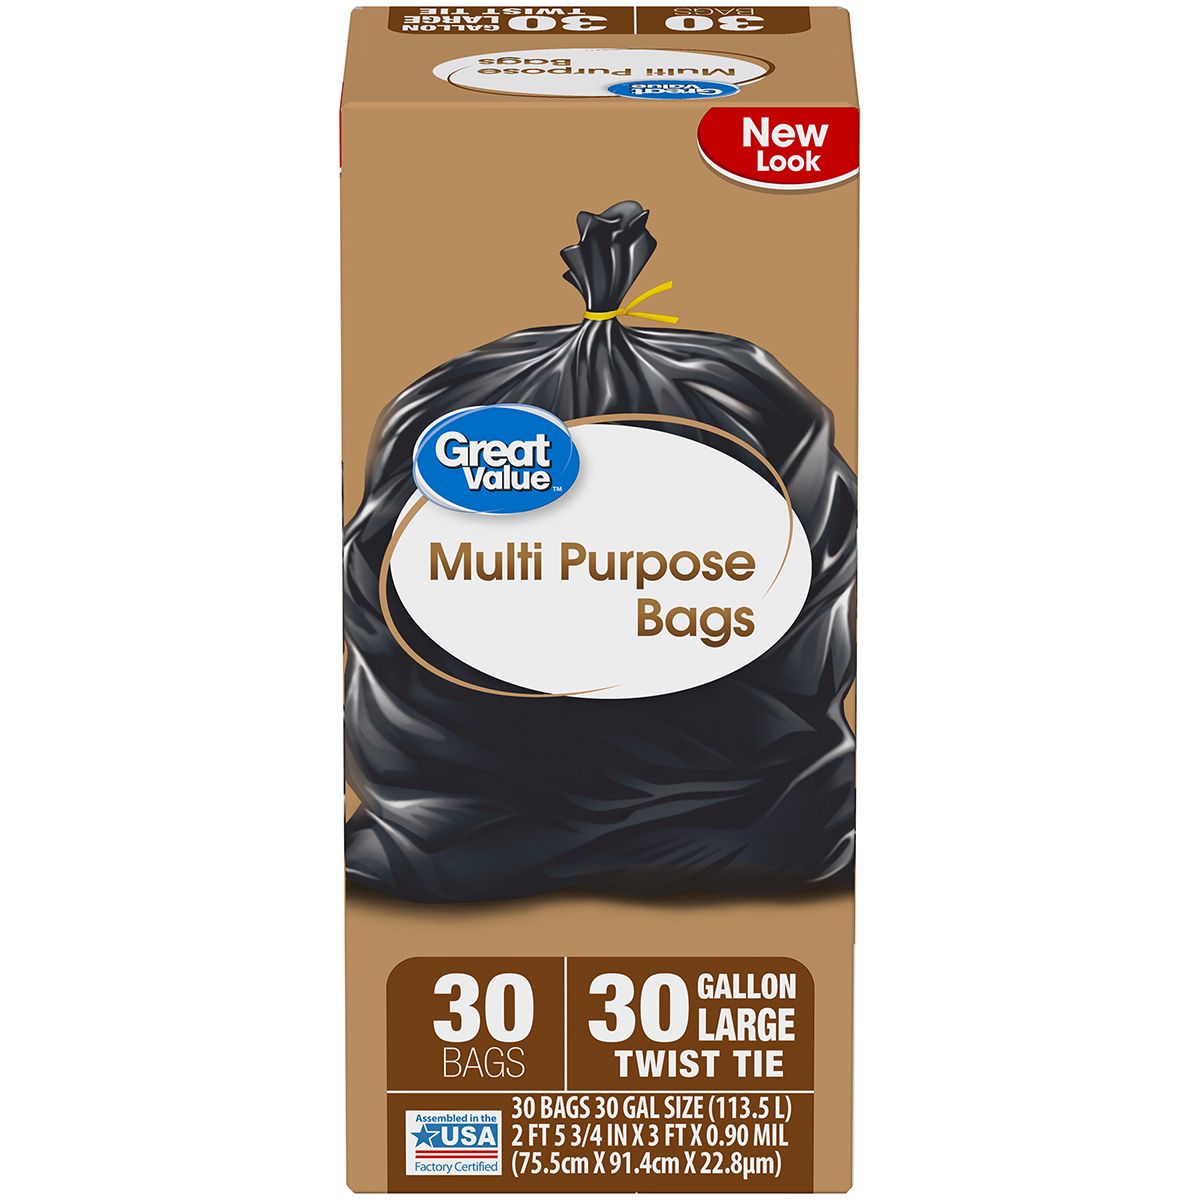 Great Value Large Multi-Purpose Twist Tie Trash Bags, 30 Gallon, 30 Count